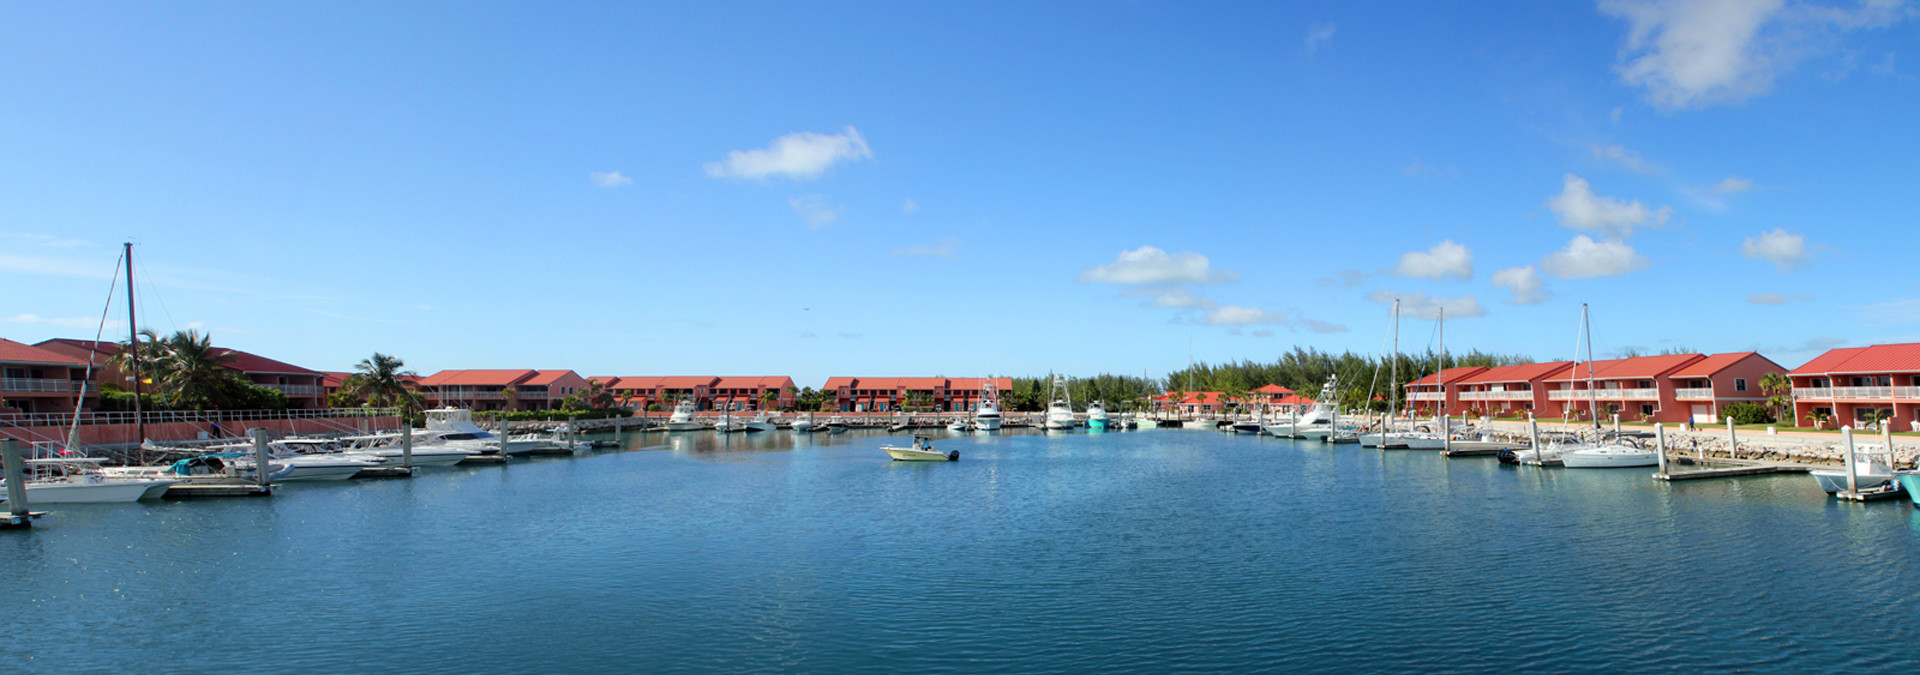 Bimini Sands Resort & Marina in Bimini Island, 0